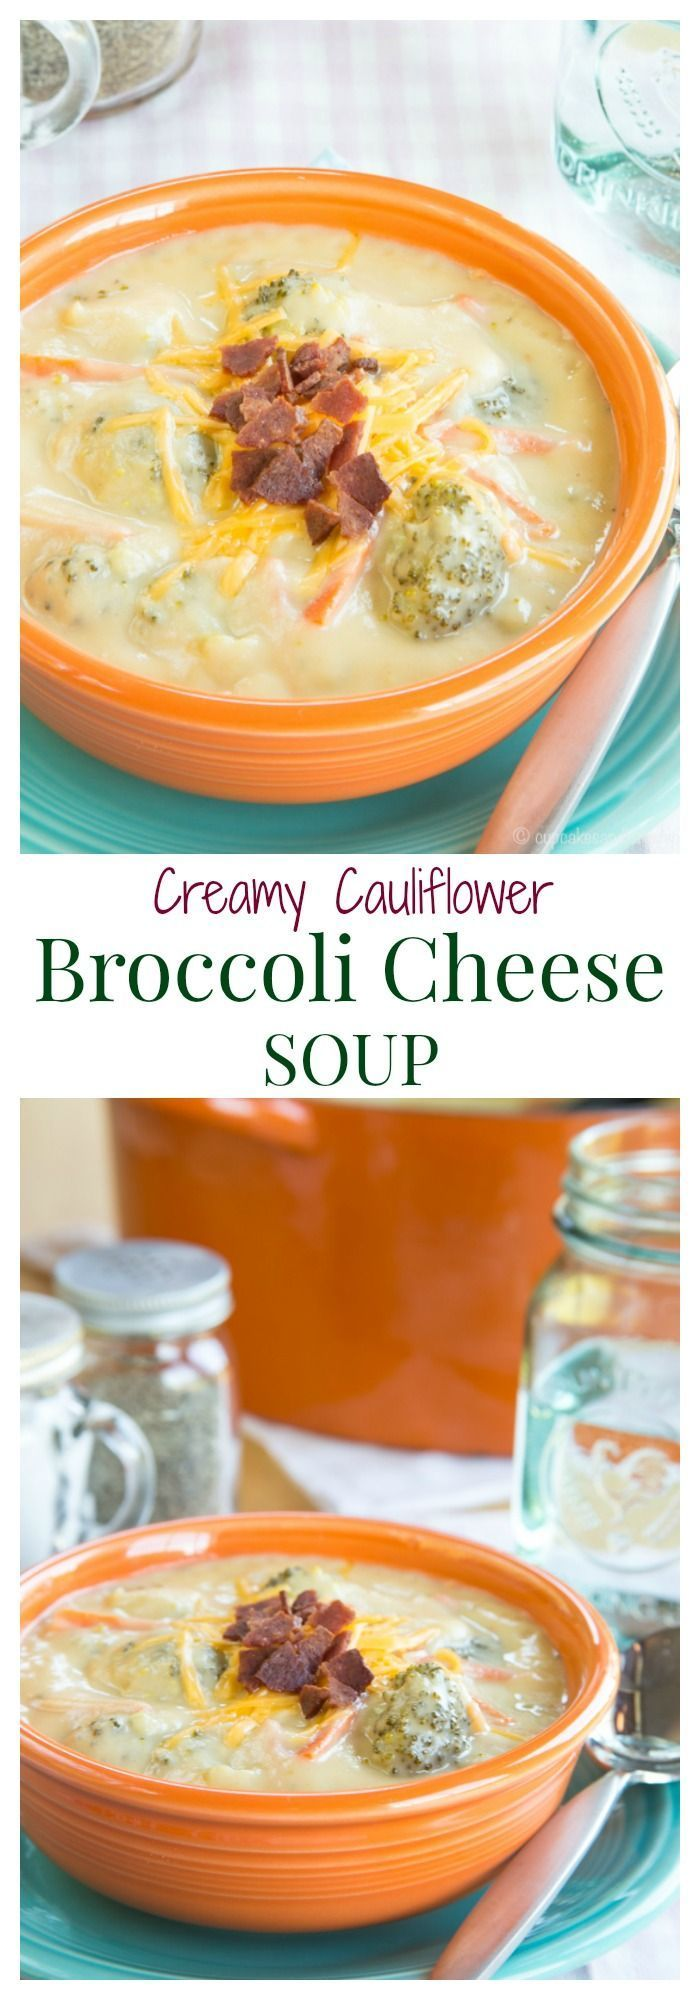 Creamy Cauliflower Broccoli Cheese Soup - a healthier and veggie-packed version of a favorite comfort food recipe for #SundaySupper   cupcakesandkalechips.com   gluten free, low carb, vegetarian (without the bacon garnish)